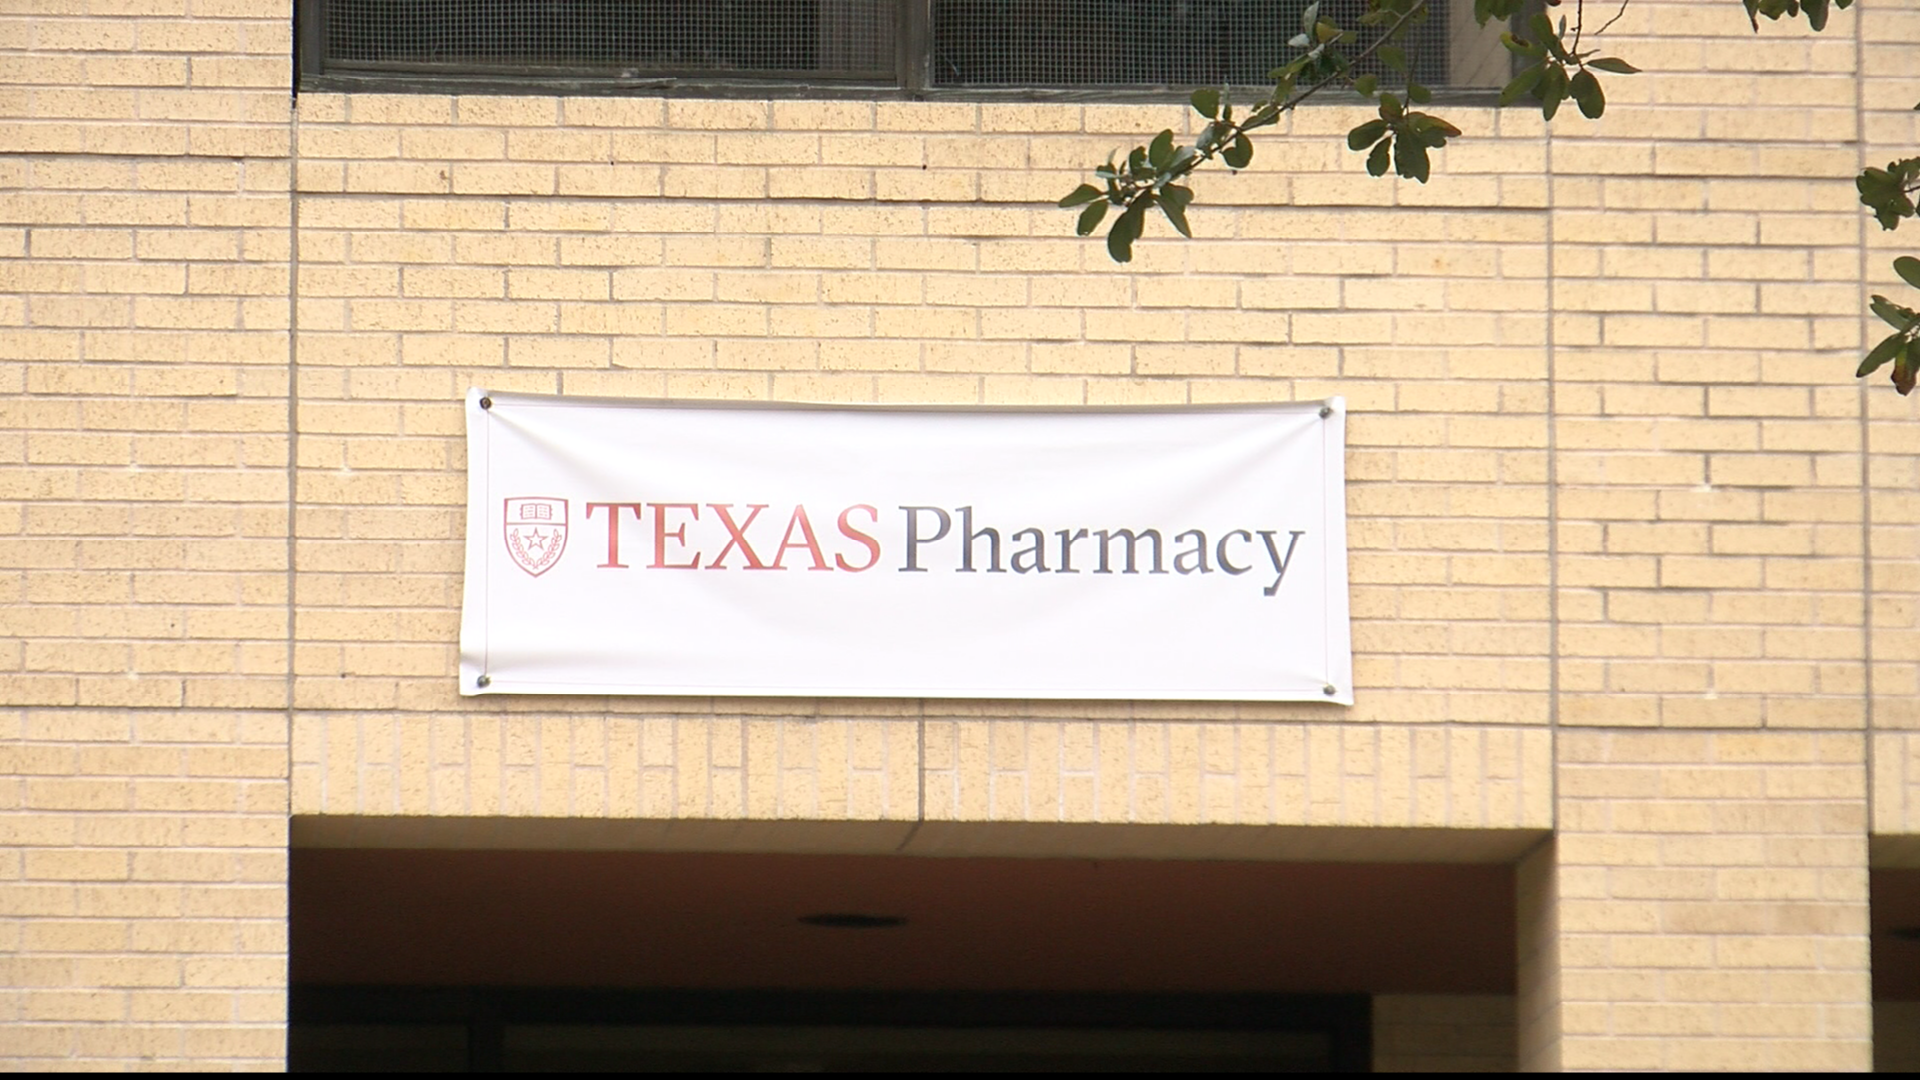 The pharmacy school building at the University of Texas was vandalized with graffiti overnight. (CBS Austin)